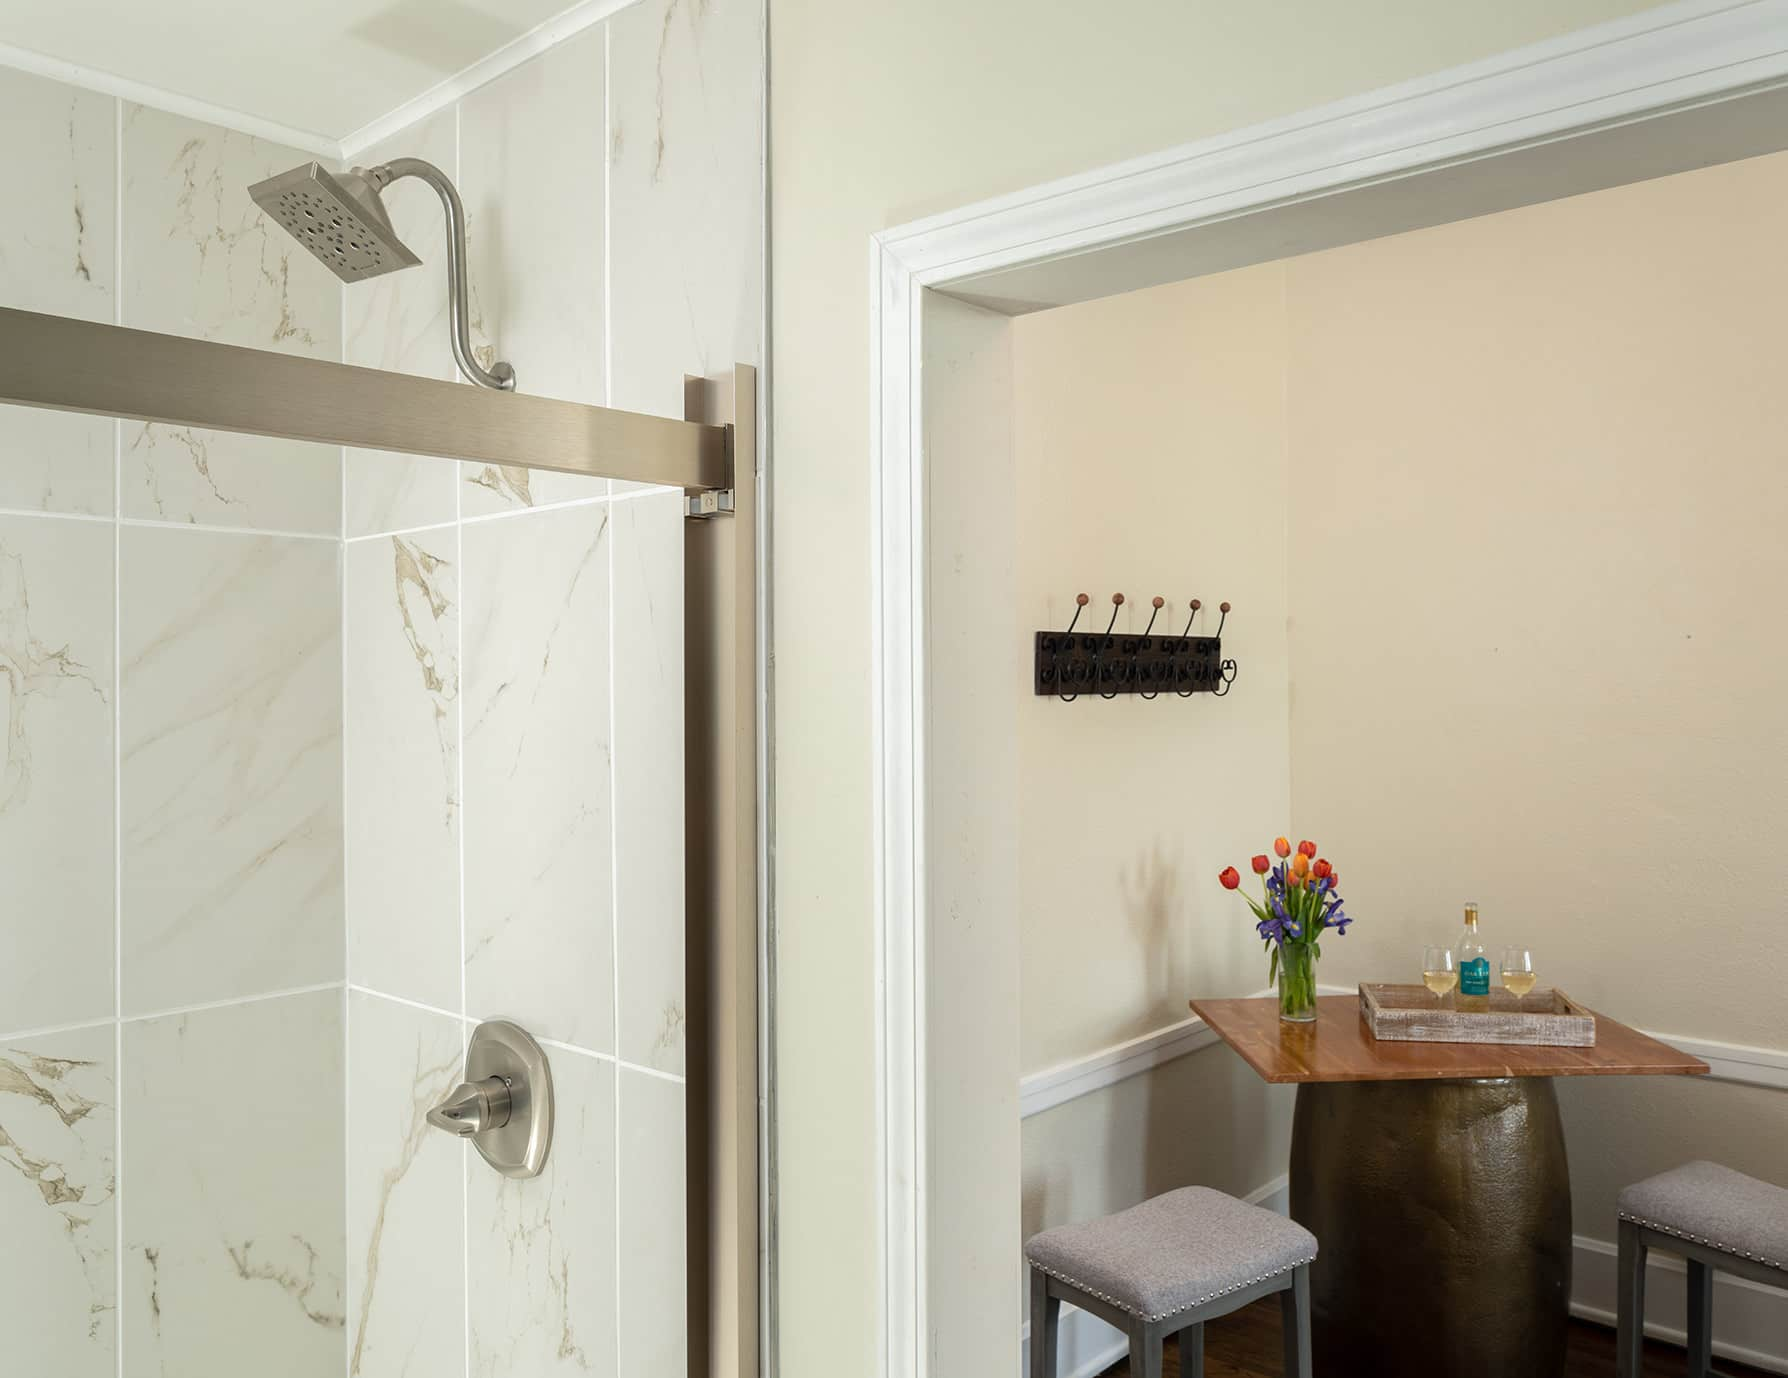 The Wellington room shower and small table